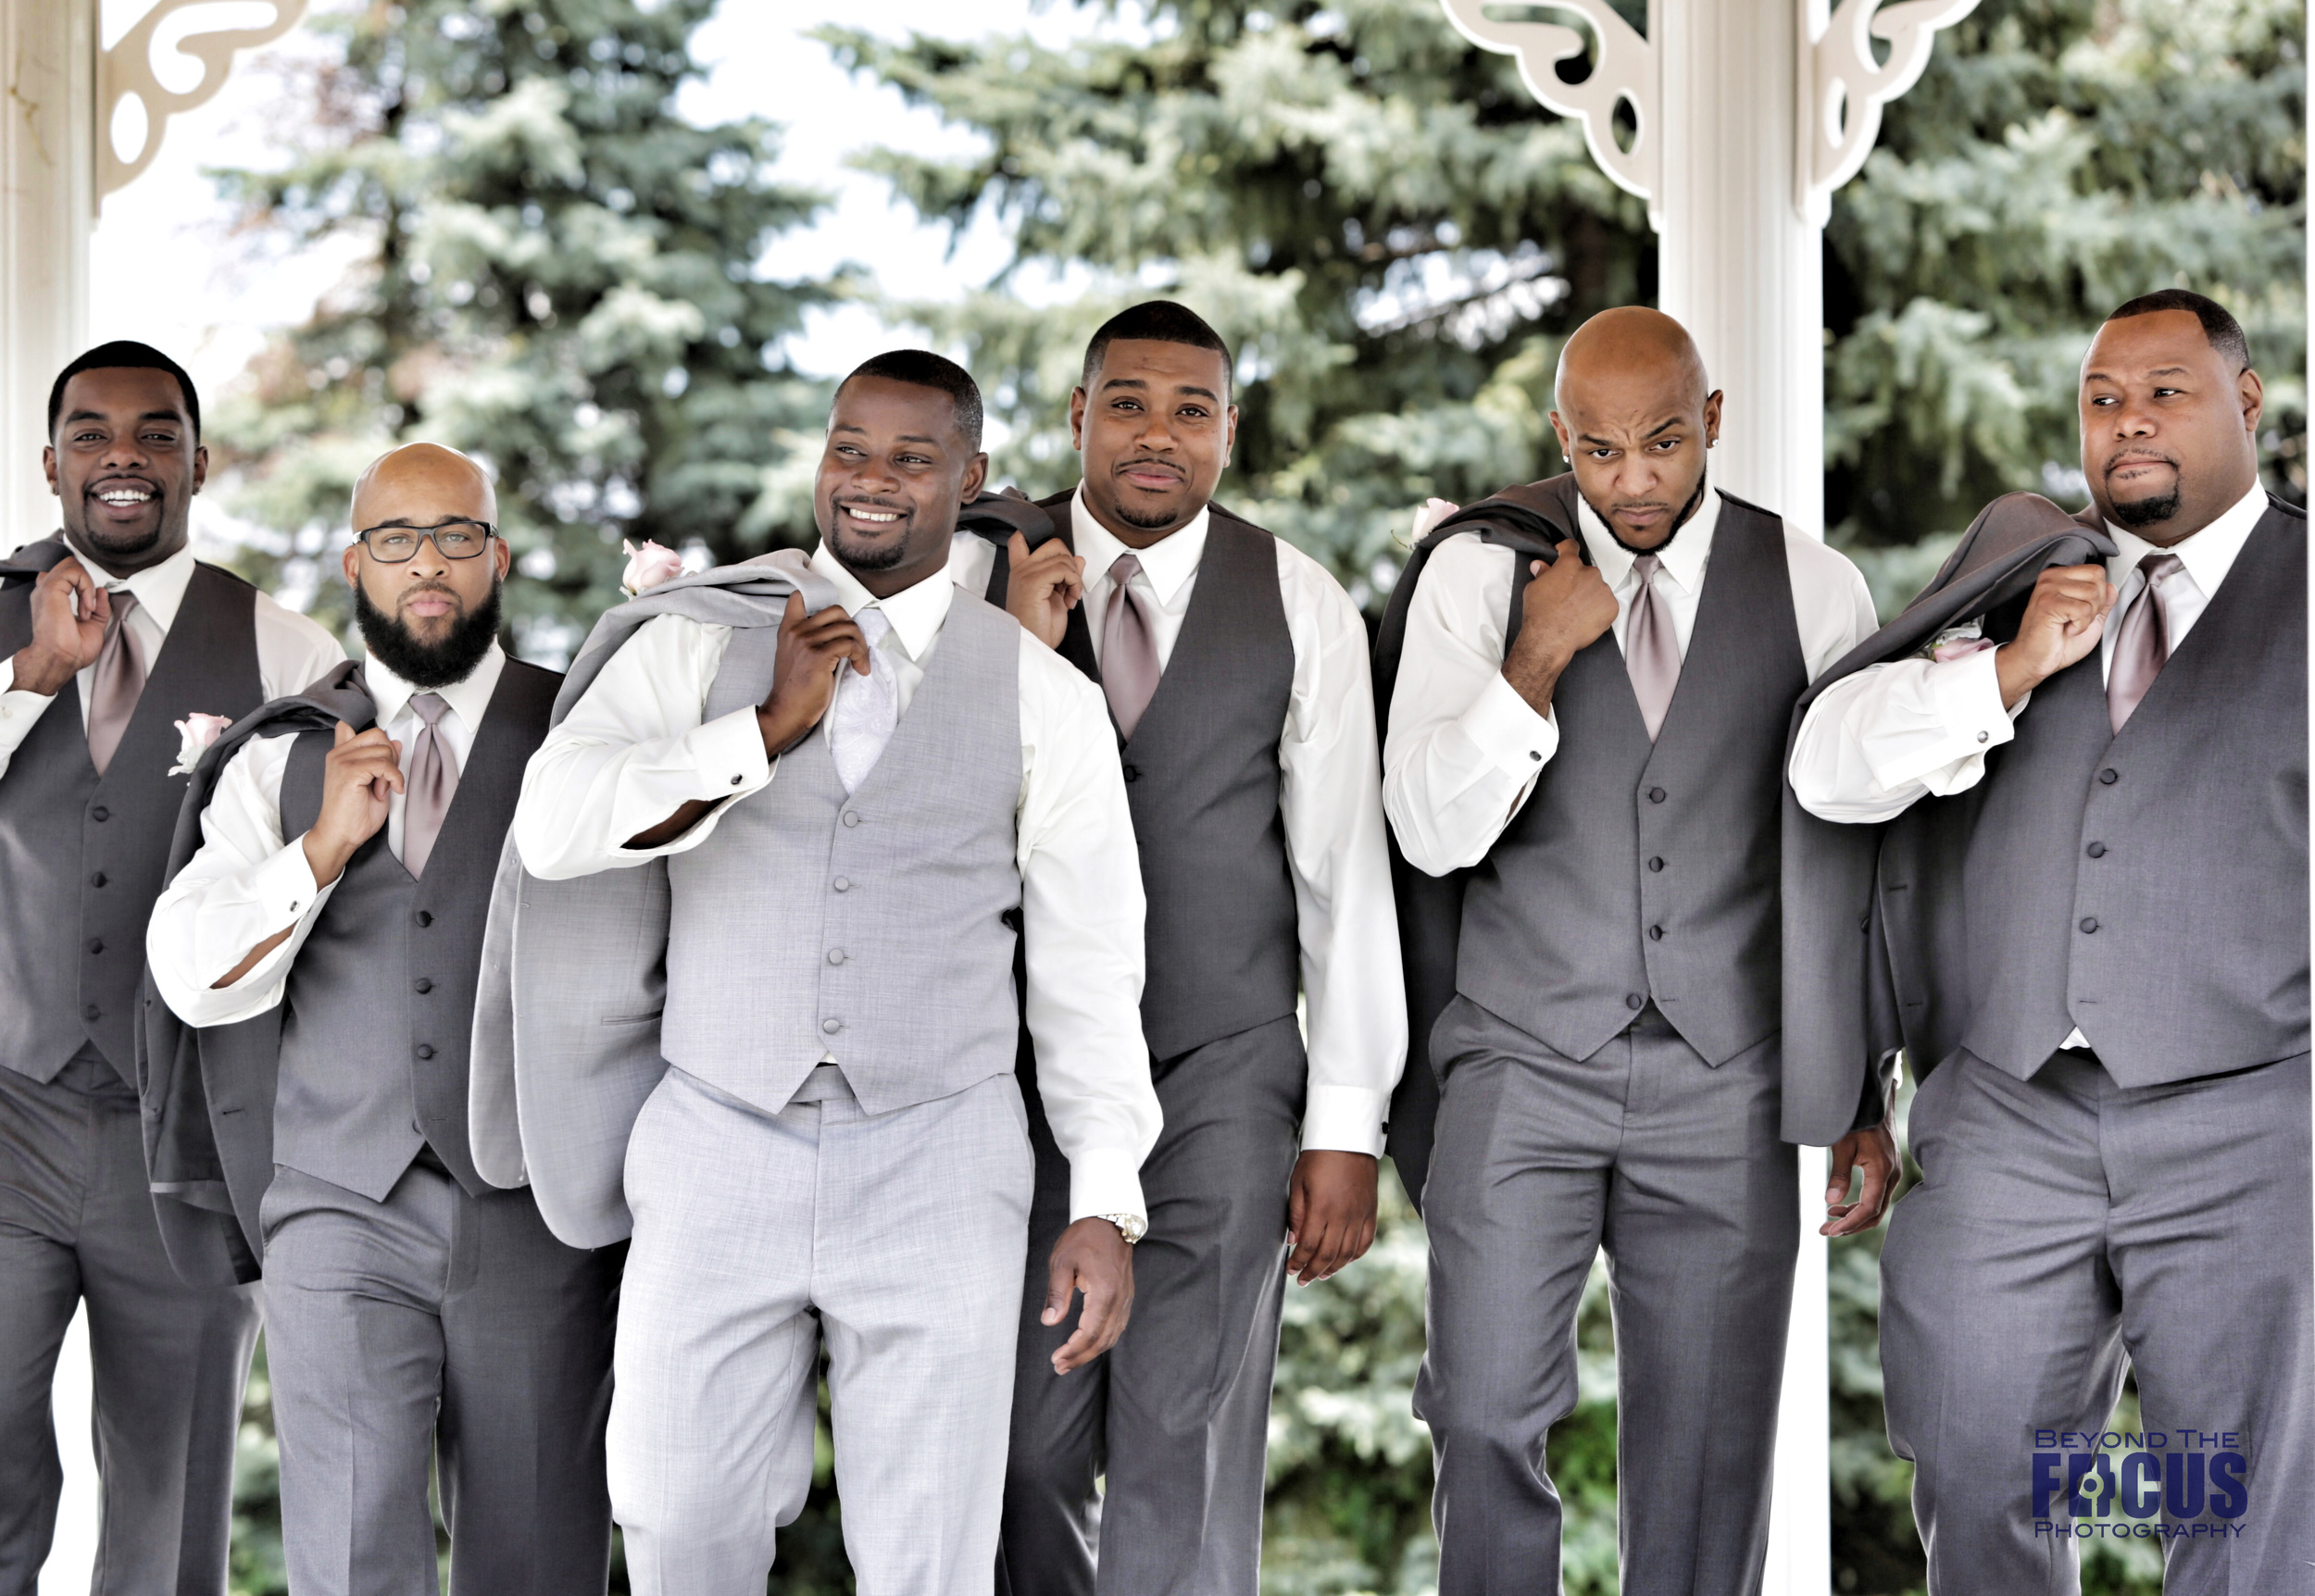 Palmer Wedding - Pre-Wedding Photos Guys26.jpg